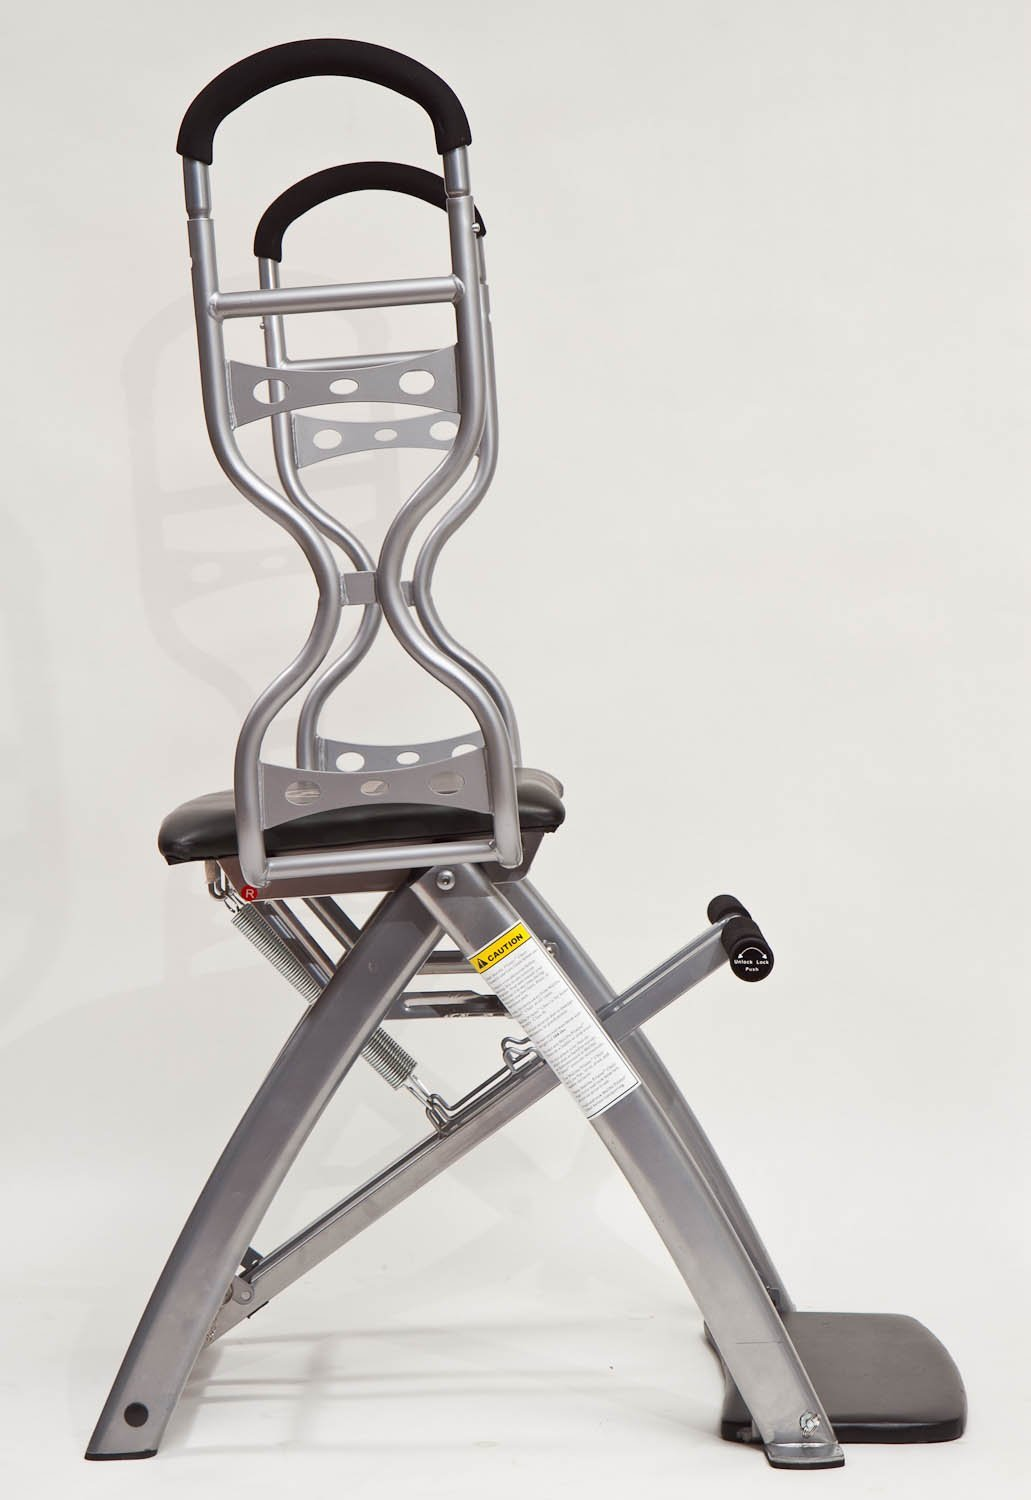 malibu pilates chair best back support for office pro accelerated results package